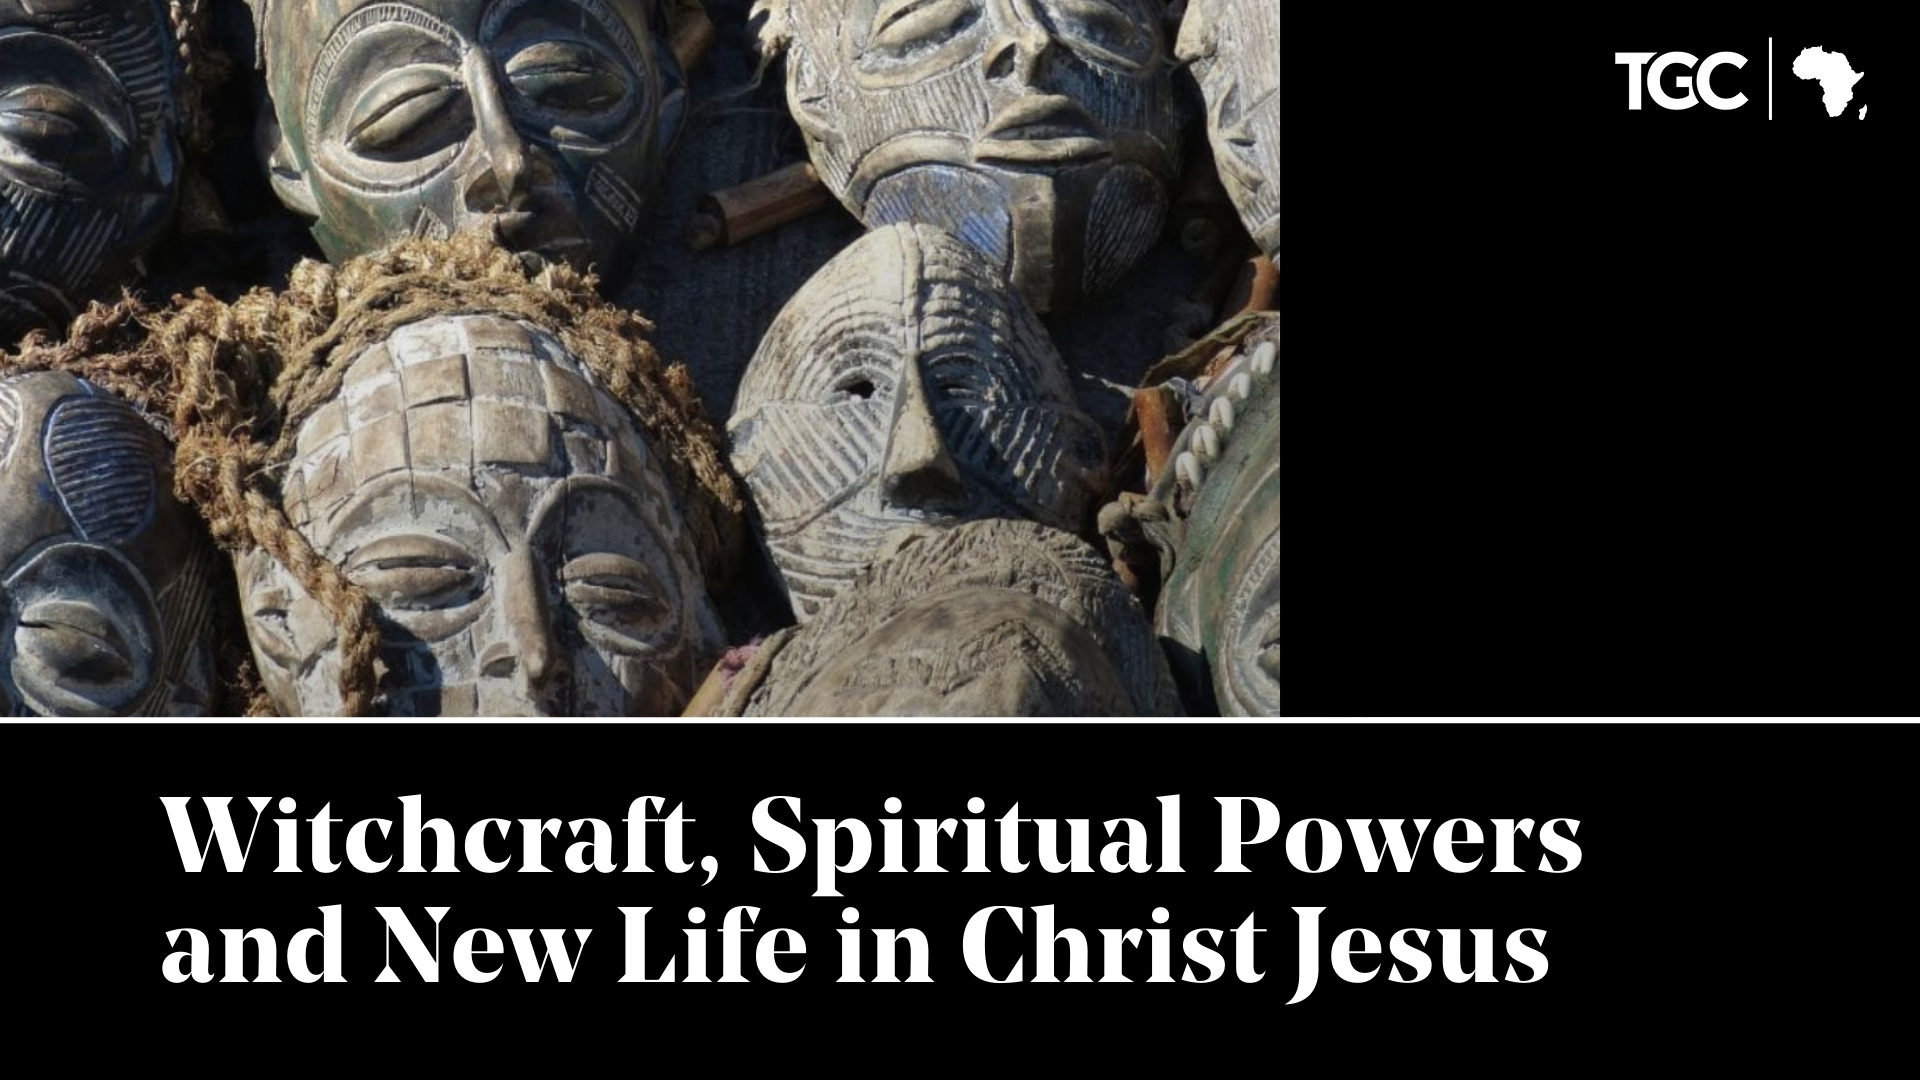 Witchcraft, Spiritual Powers and New Life in Christ Jesus cover